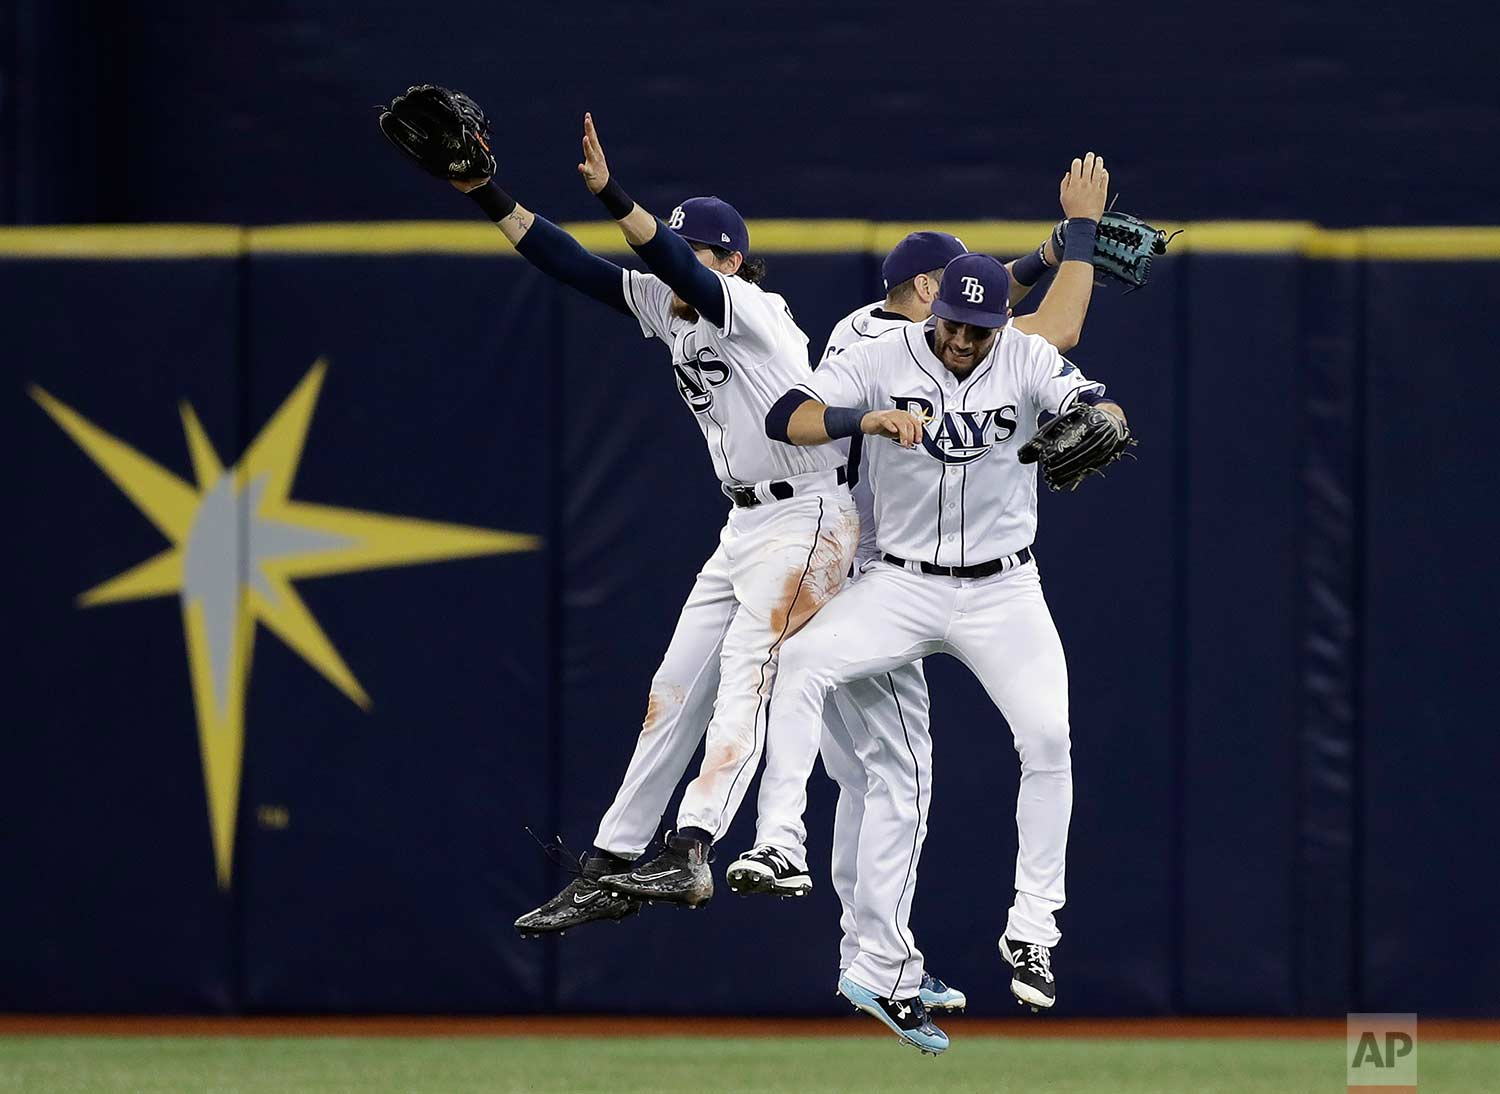 Tampa Bay Rays center fielder Colby Rasmus, right fielder Steven Souza Jr., and center fielder Kevin Kiermaier, from left, celebrate the team's 3-1 win over the Chicago White Sox in a baseball game Wednesday, June 7, 2017, in St. Petersburg, Fla. (AP Photo/Chris O'Meara)